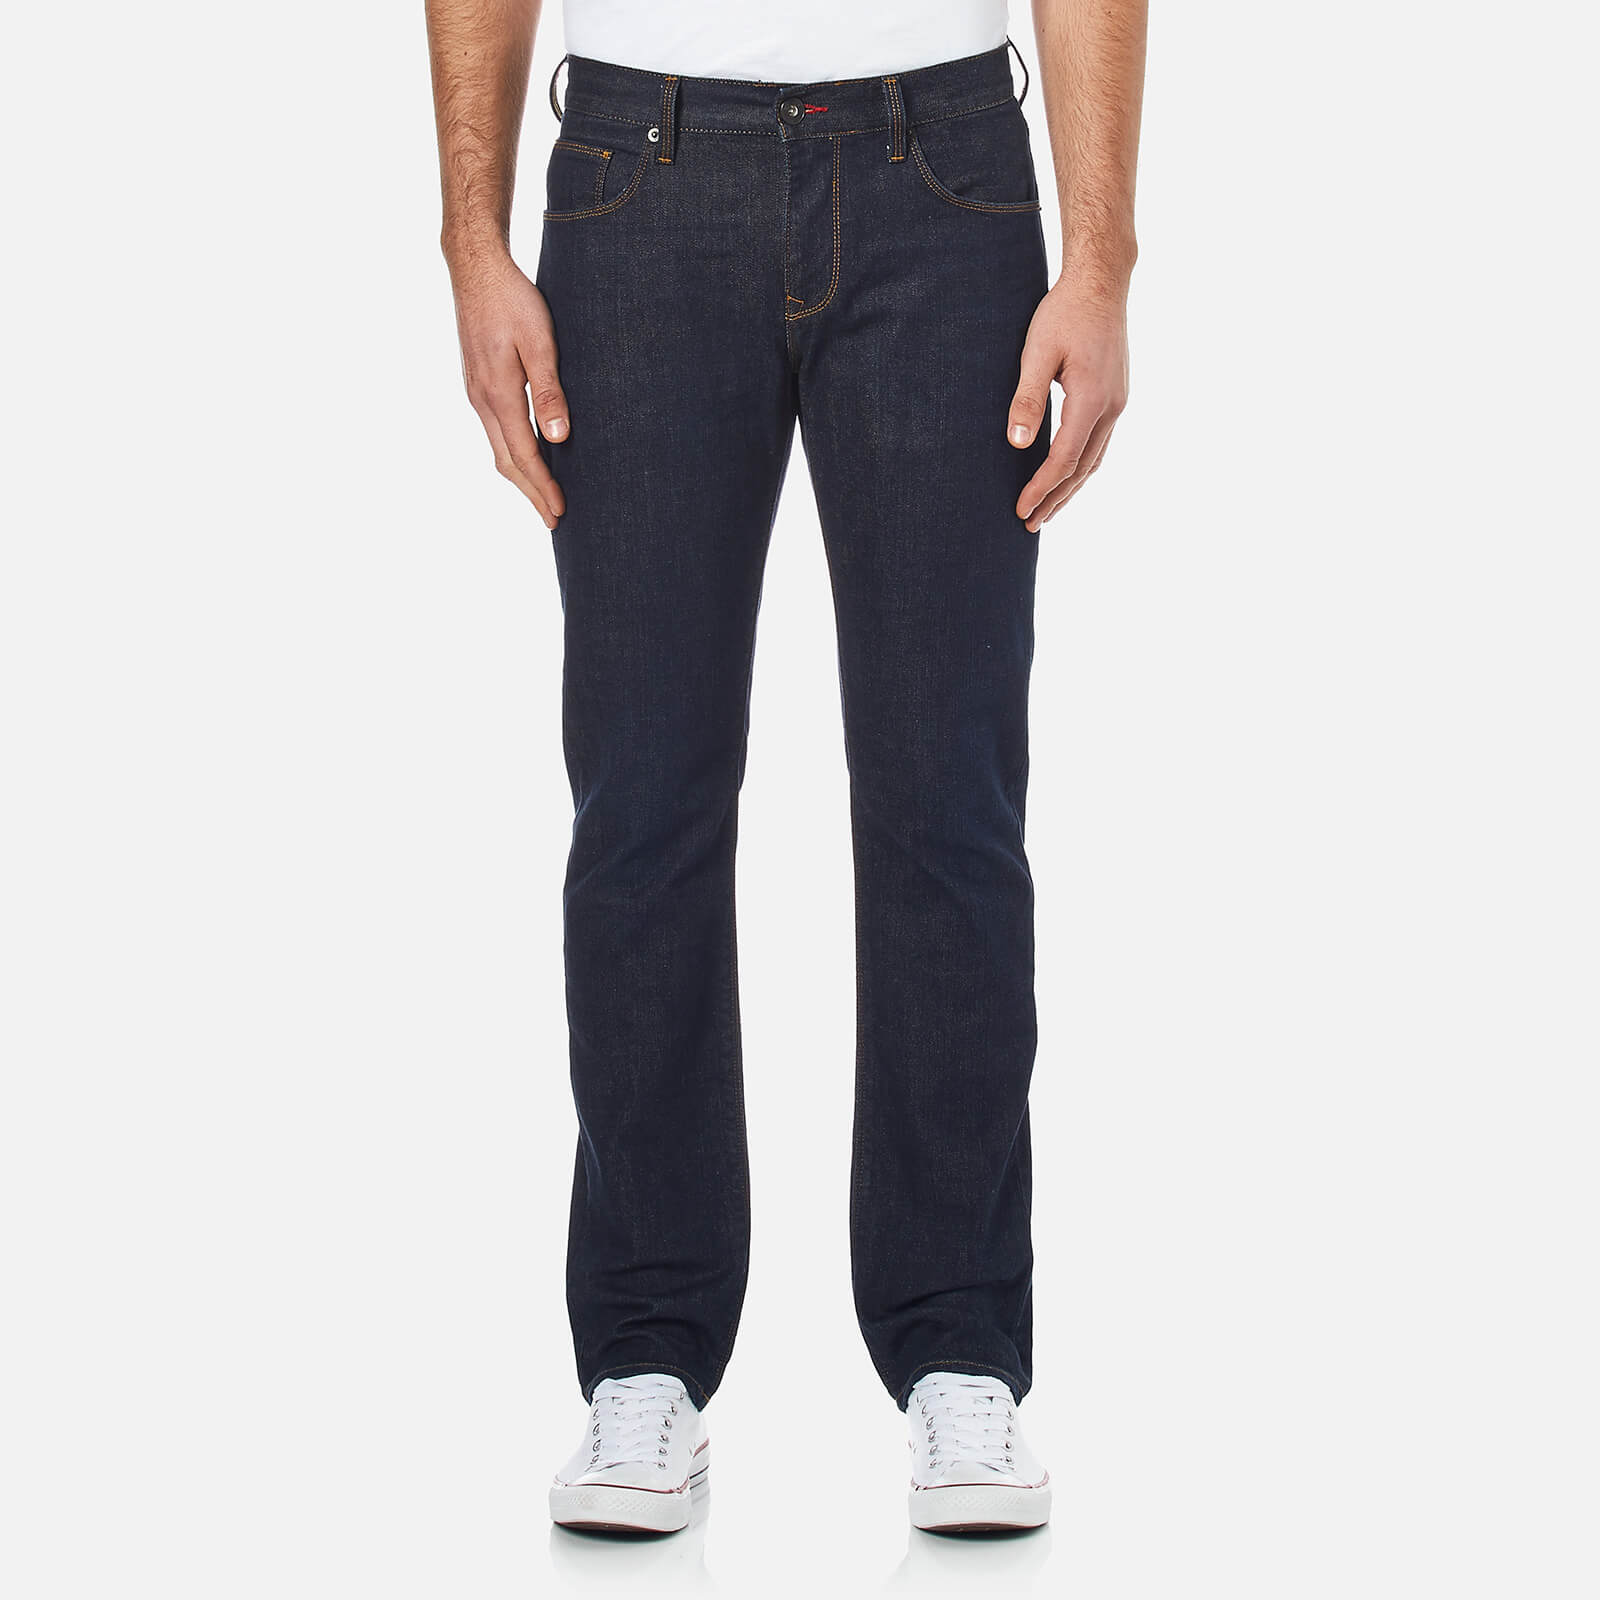 e84bd422c Tommy Hilfiger Men's Denton Straight Leg Denim Jean - Clean Blue Mens  Clothing | TheHut.com